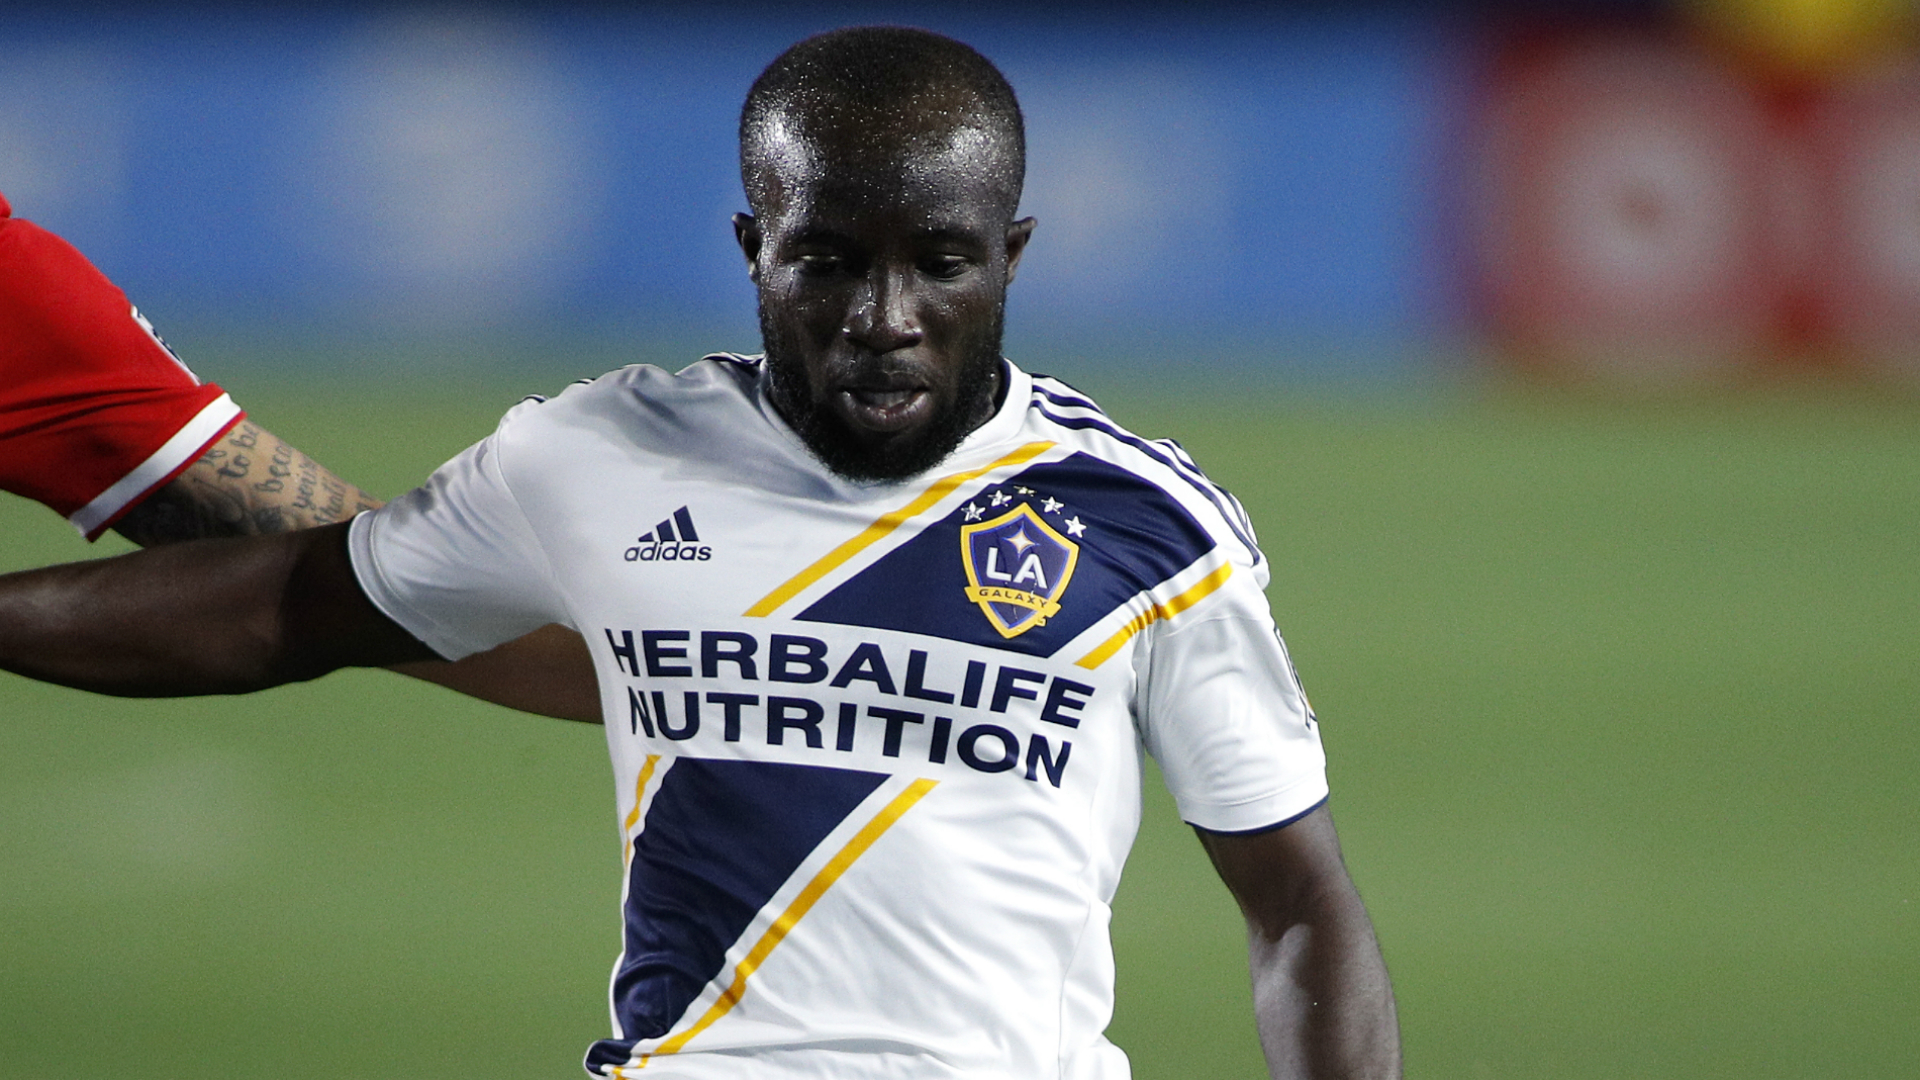 MLS Review: LA Galaxy bounce back, Fernandez equals record